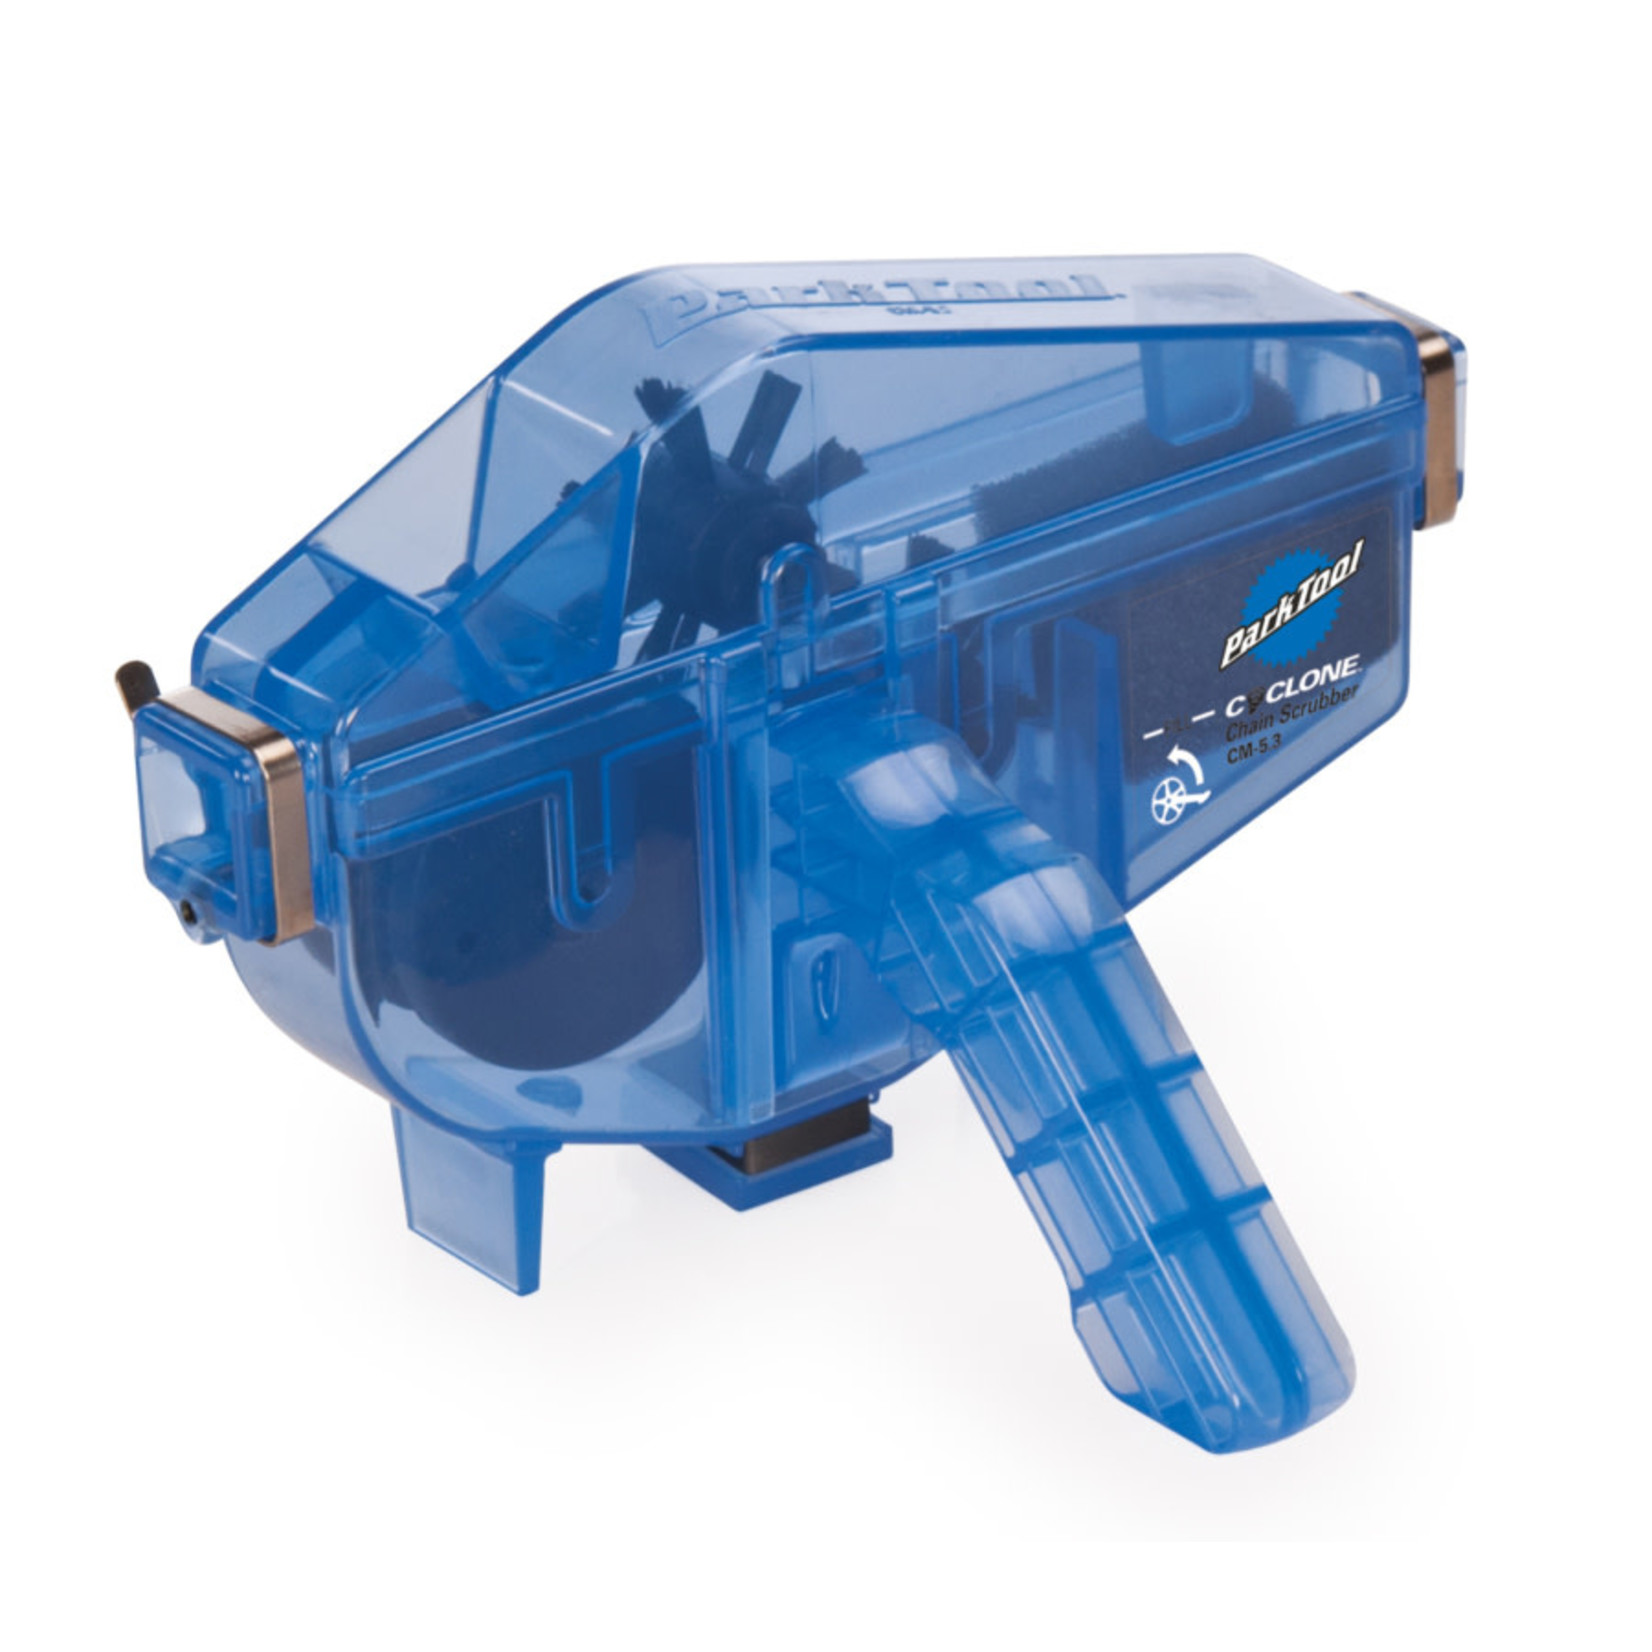 Park Tool Park Tools CM-5.3 Cyclone Chain Scrubber